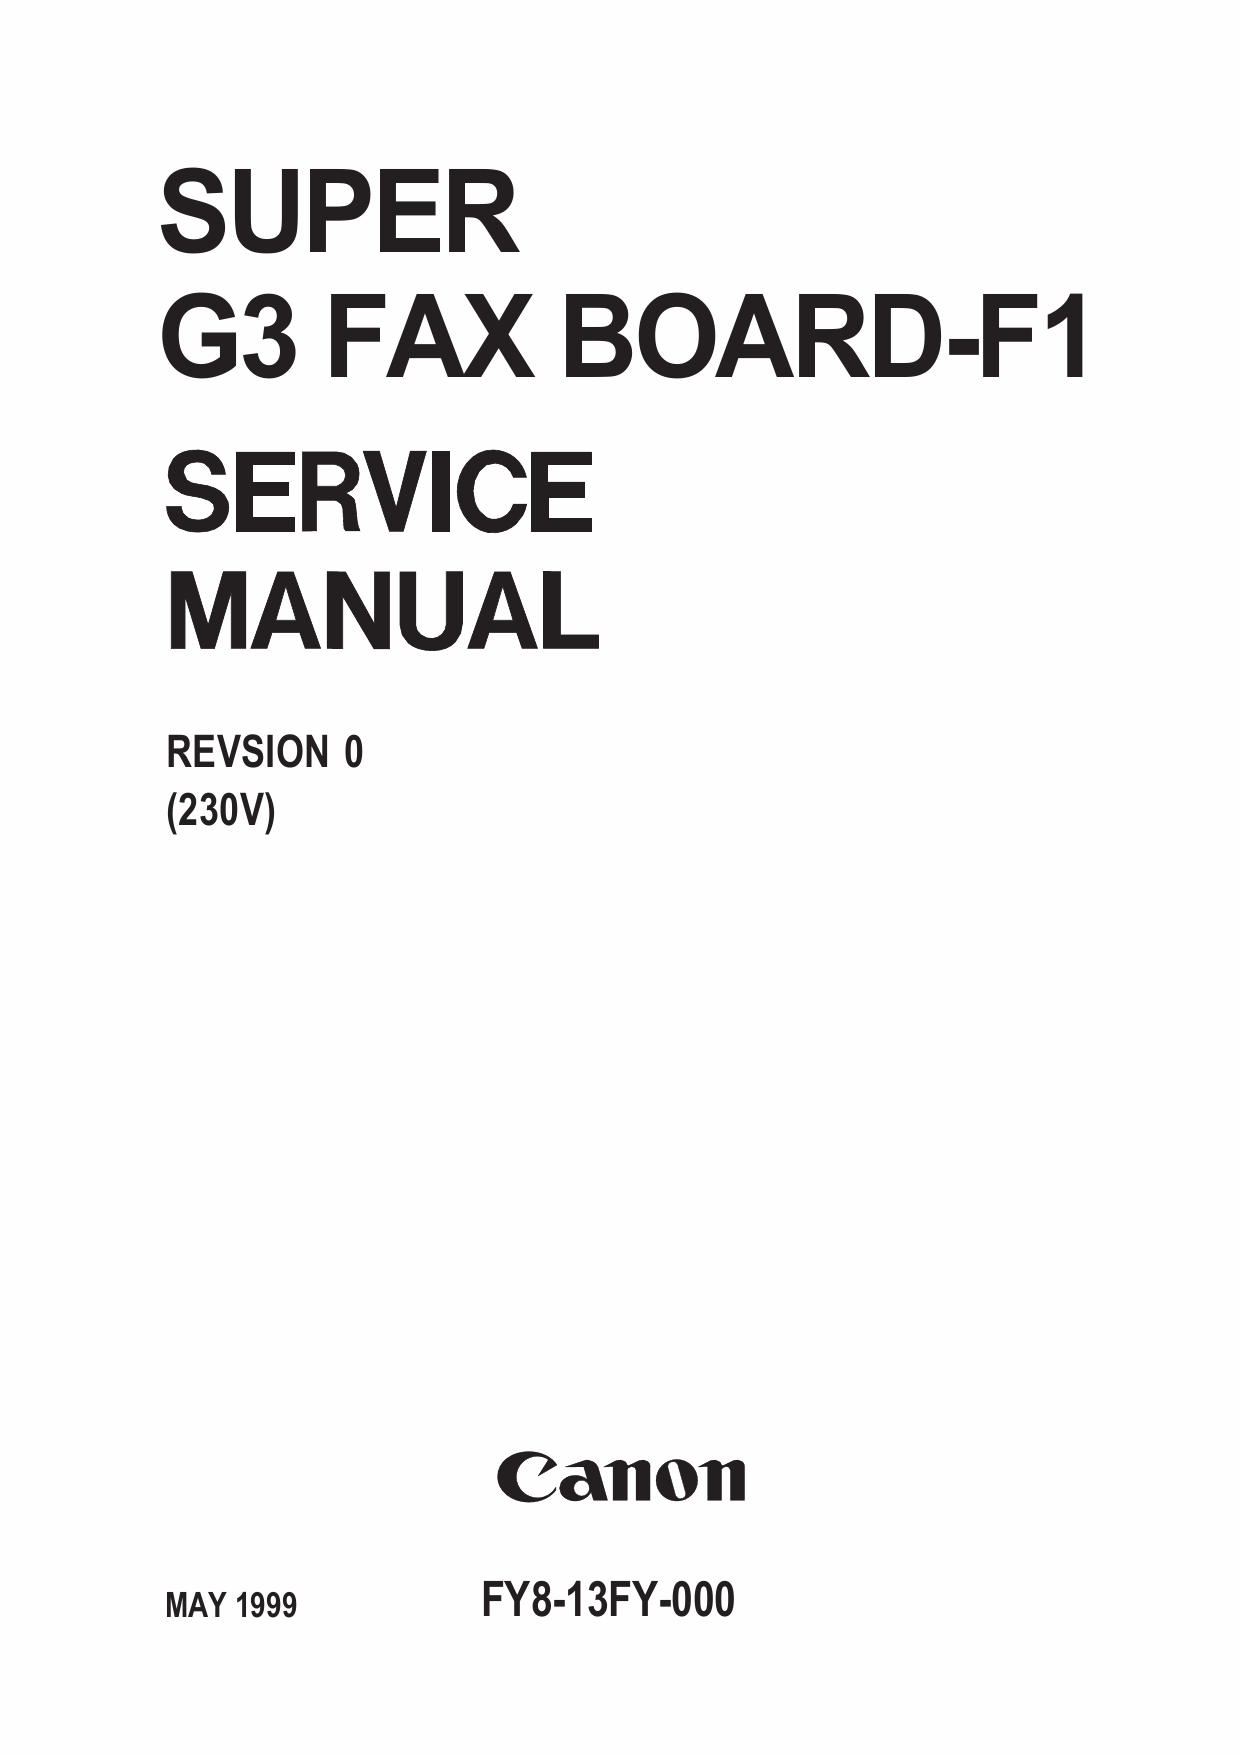 Canon Options Fax-F1 Super-G3 Fax-Board-F1 Service Manual